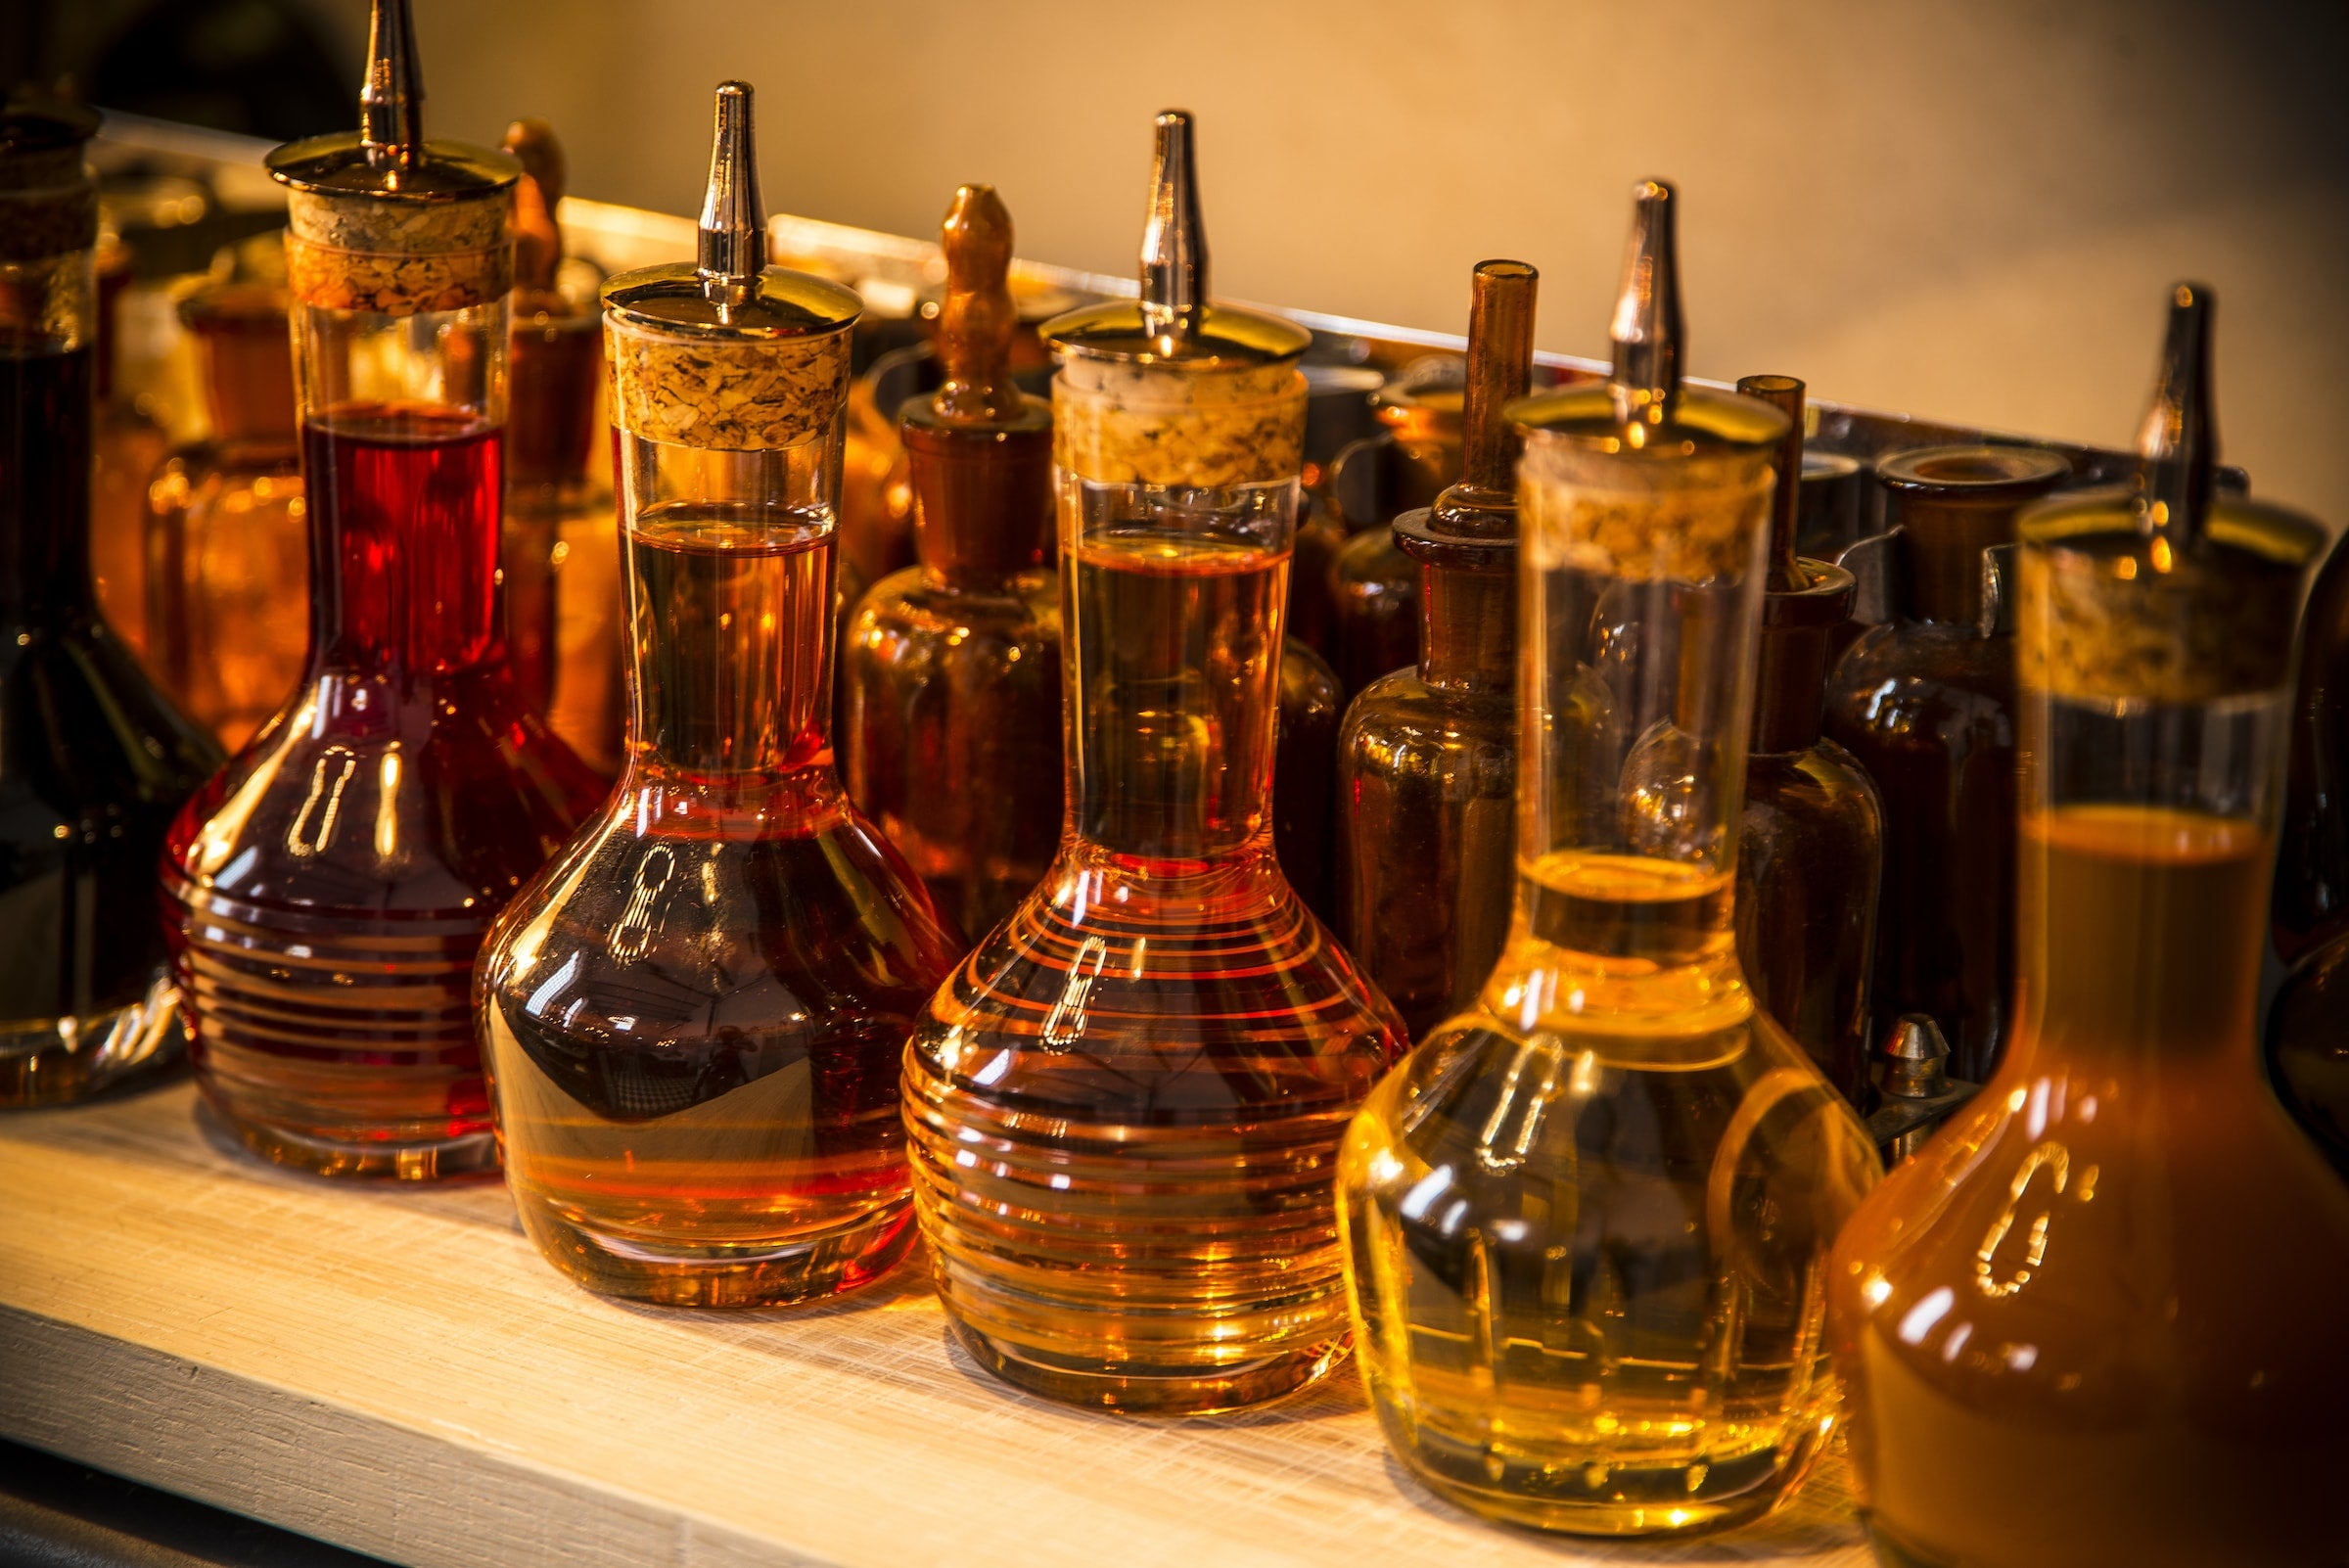 Bitters bottles in the tasting room at the Elyx Distillery